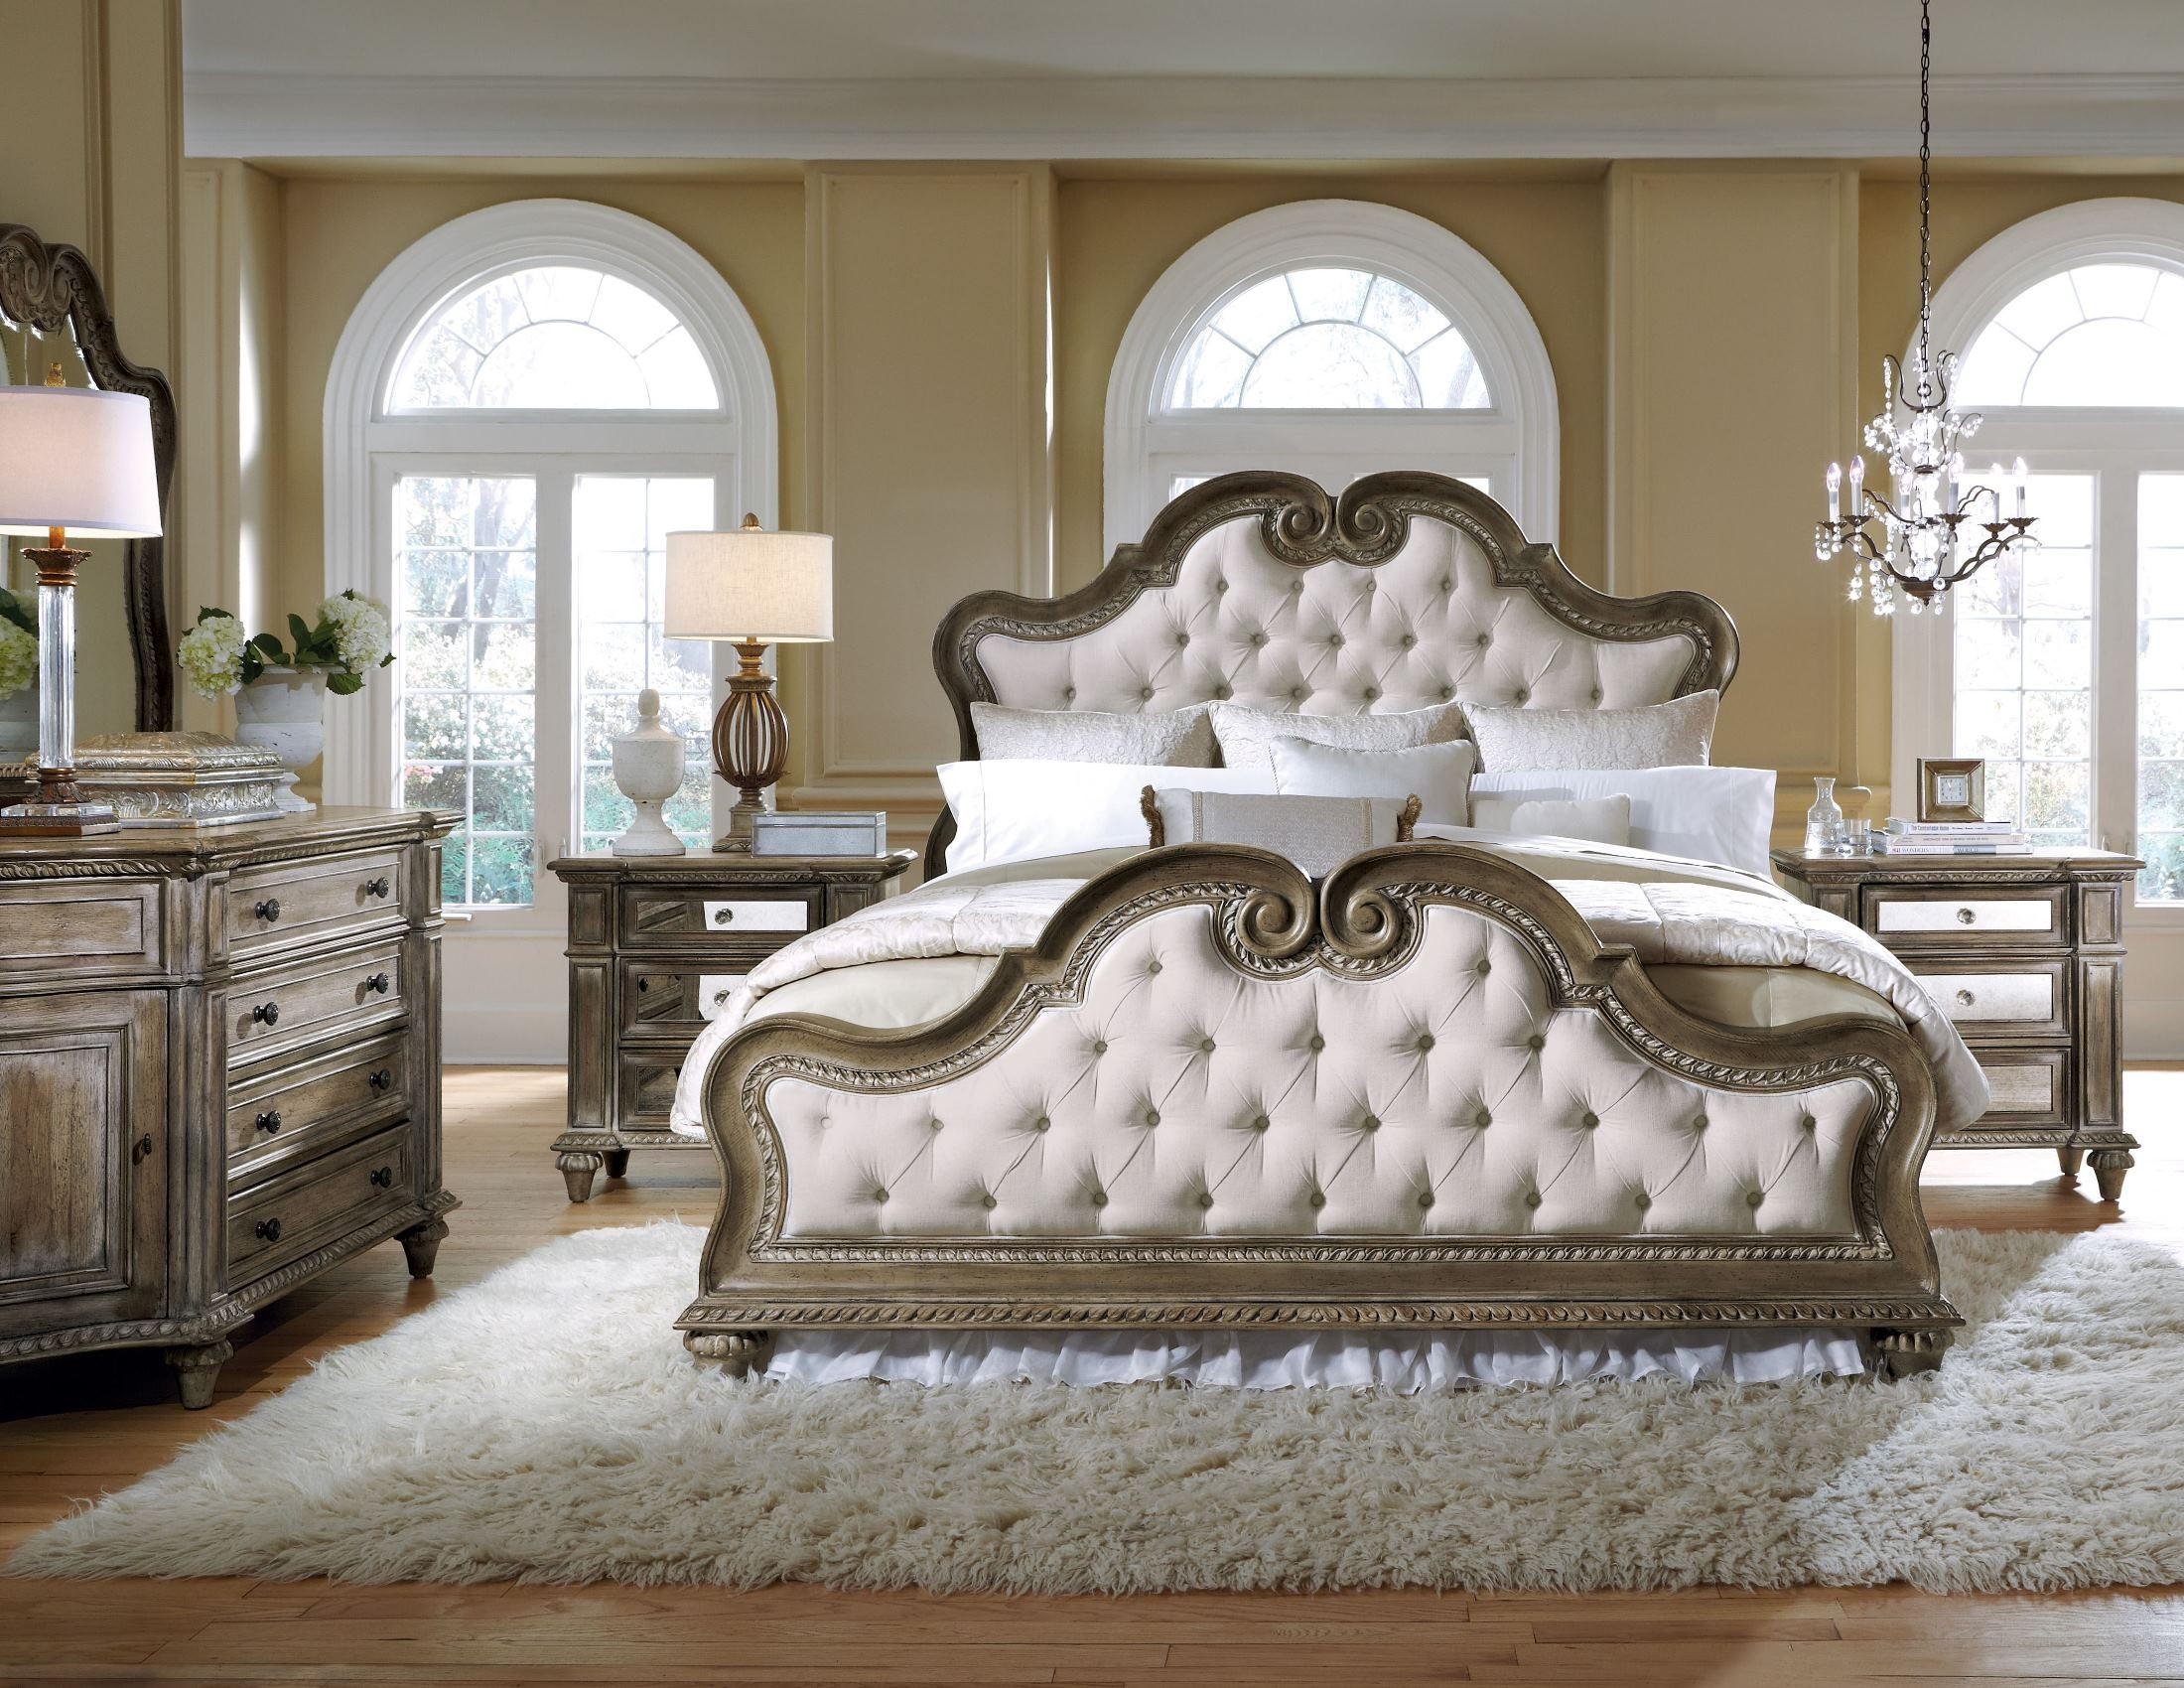 Arabella upholstered bedroom set from pulaski 211170 for Affordable furniture catalogue